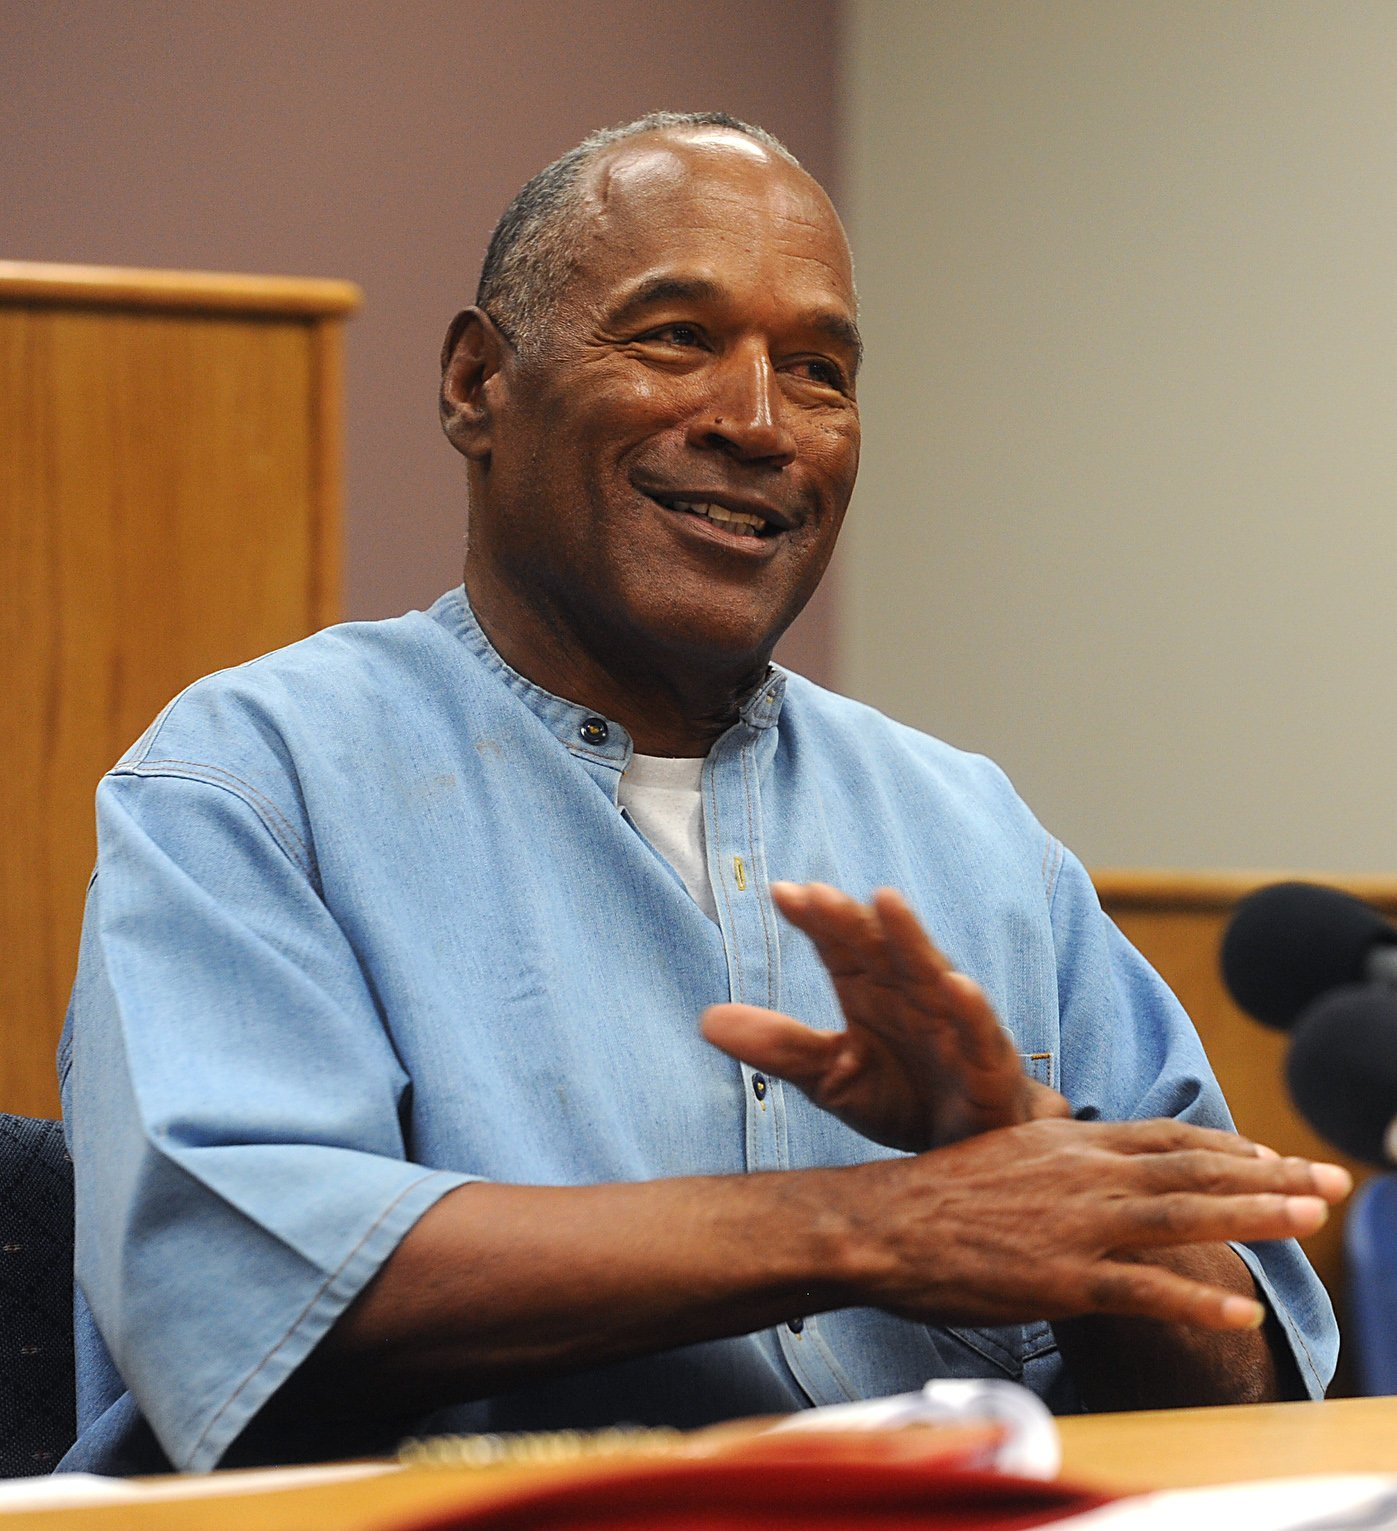 O.J. Simpson after a parole hearing at Lovelock Correctional Center in Lovelock, Nevada, U.S. on July 20, 2017. | Photo: Getty Images